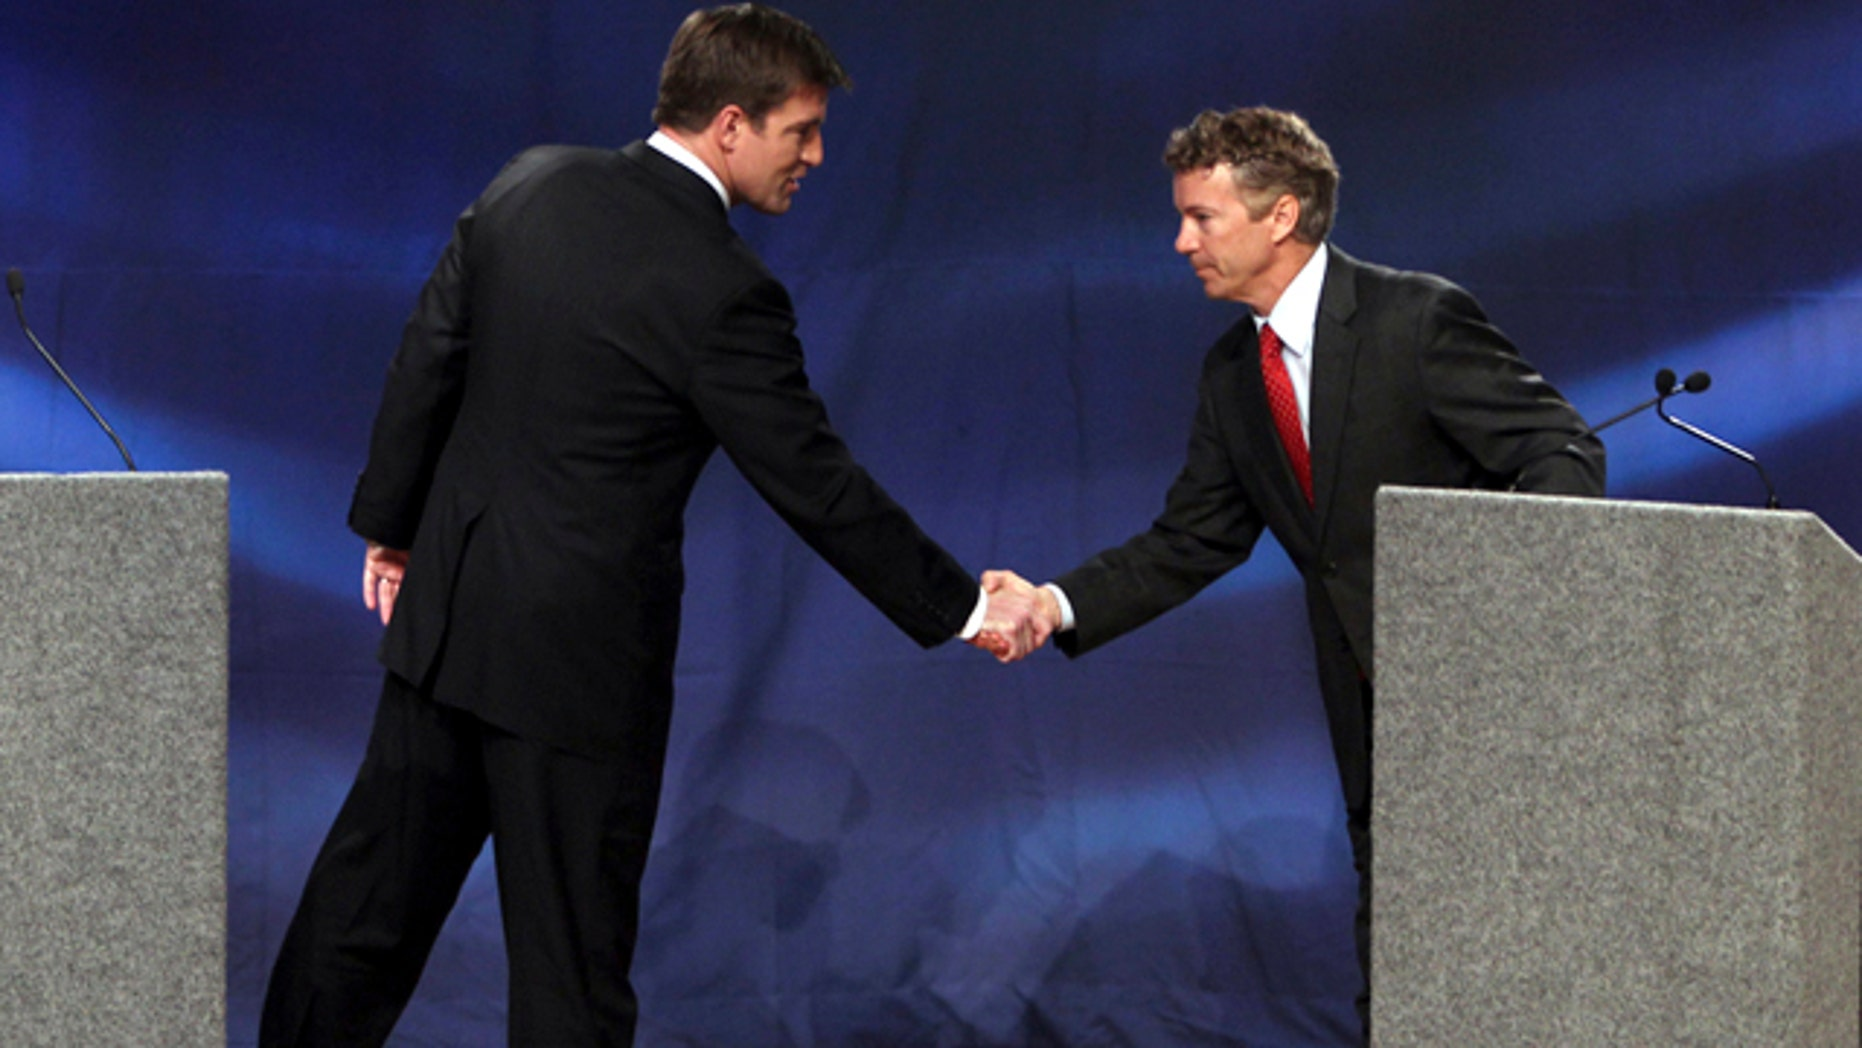 Oct. 11: Kentucky Senate candidates Democrat Jack Conway, left, and Republican Rand Paul, right, shake hands at the end of their debate at Northern Kentucky University in Highland Heights, Ky.